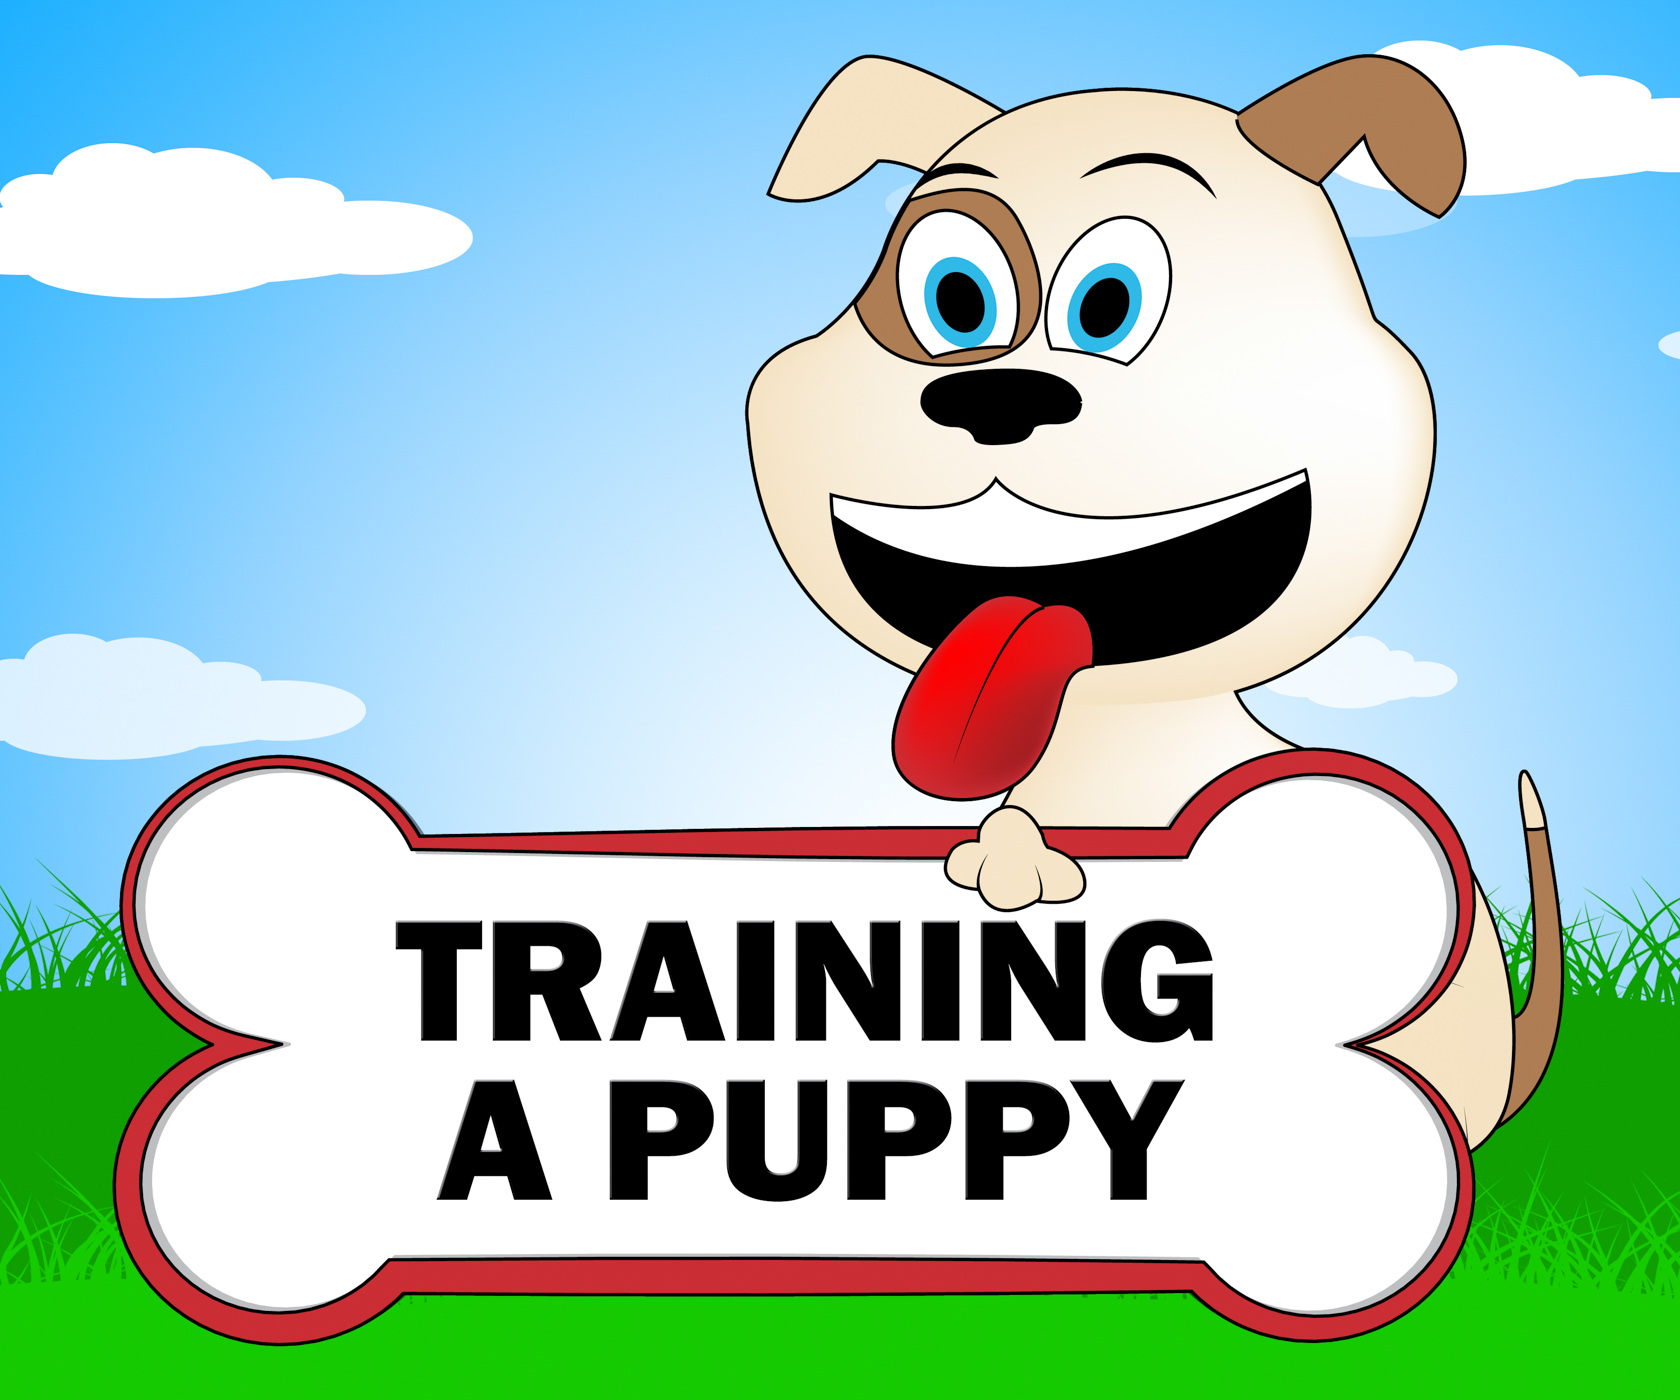 Training a puppy represents trainer instruction and coach photo